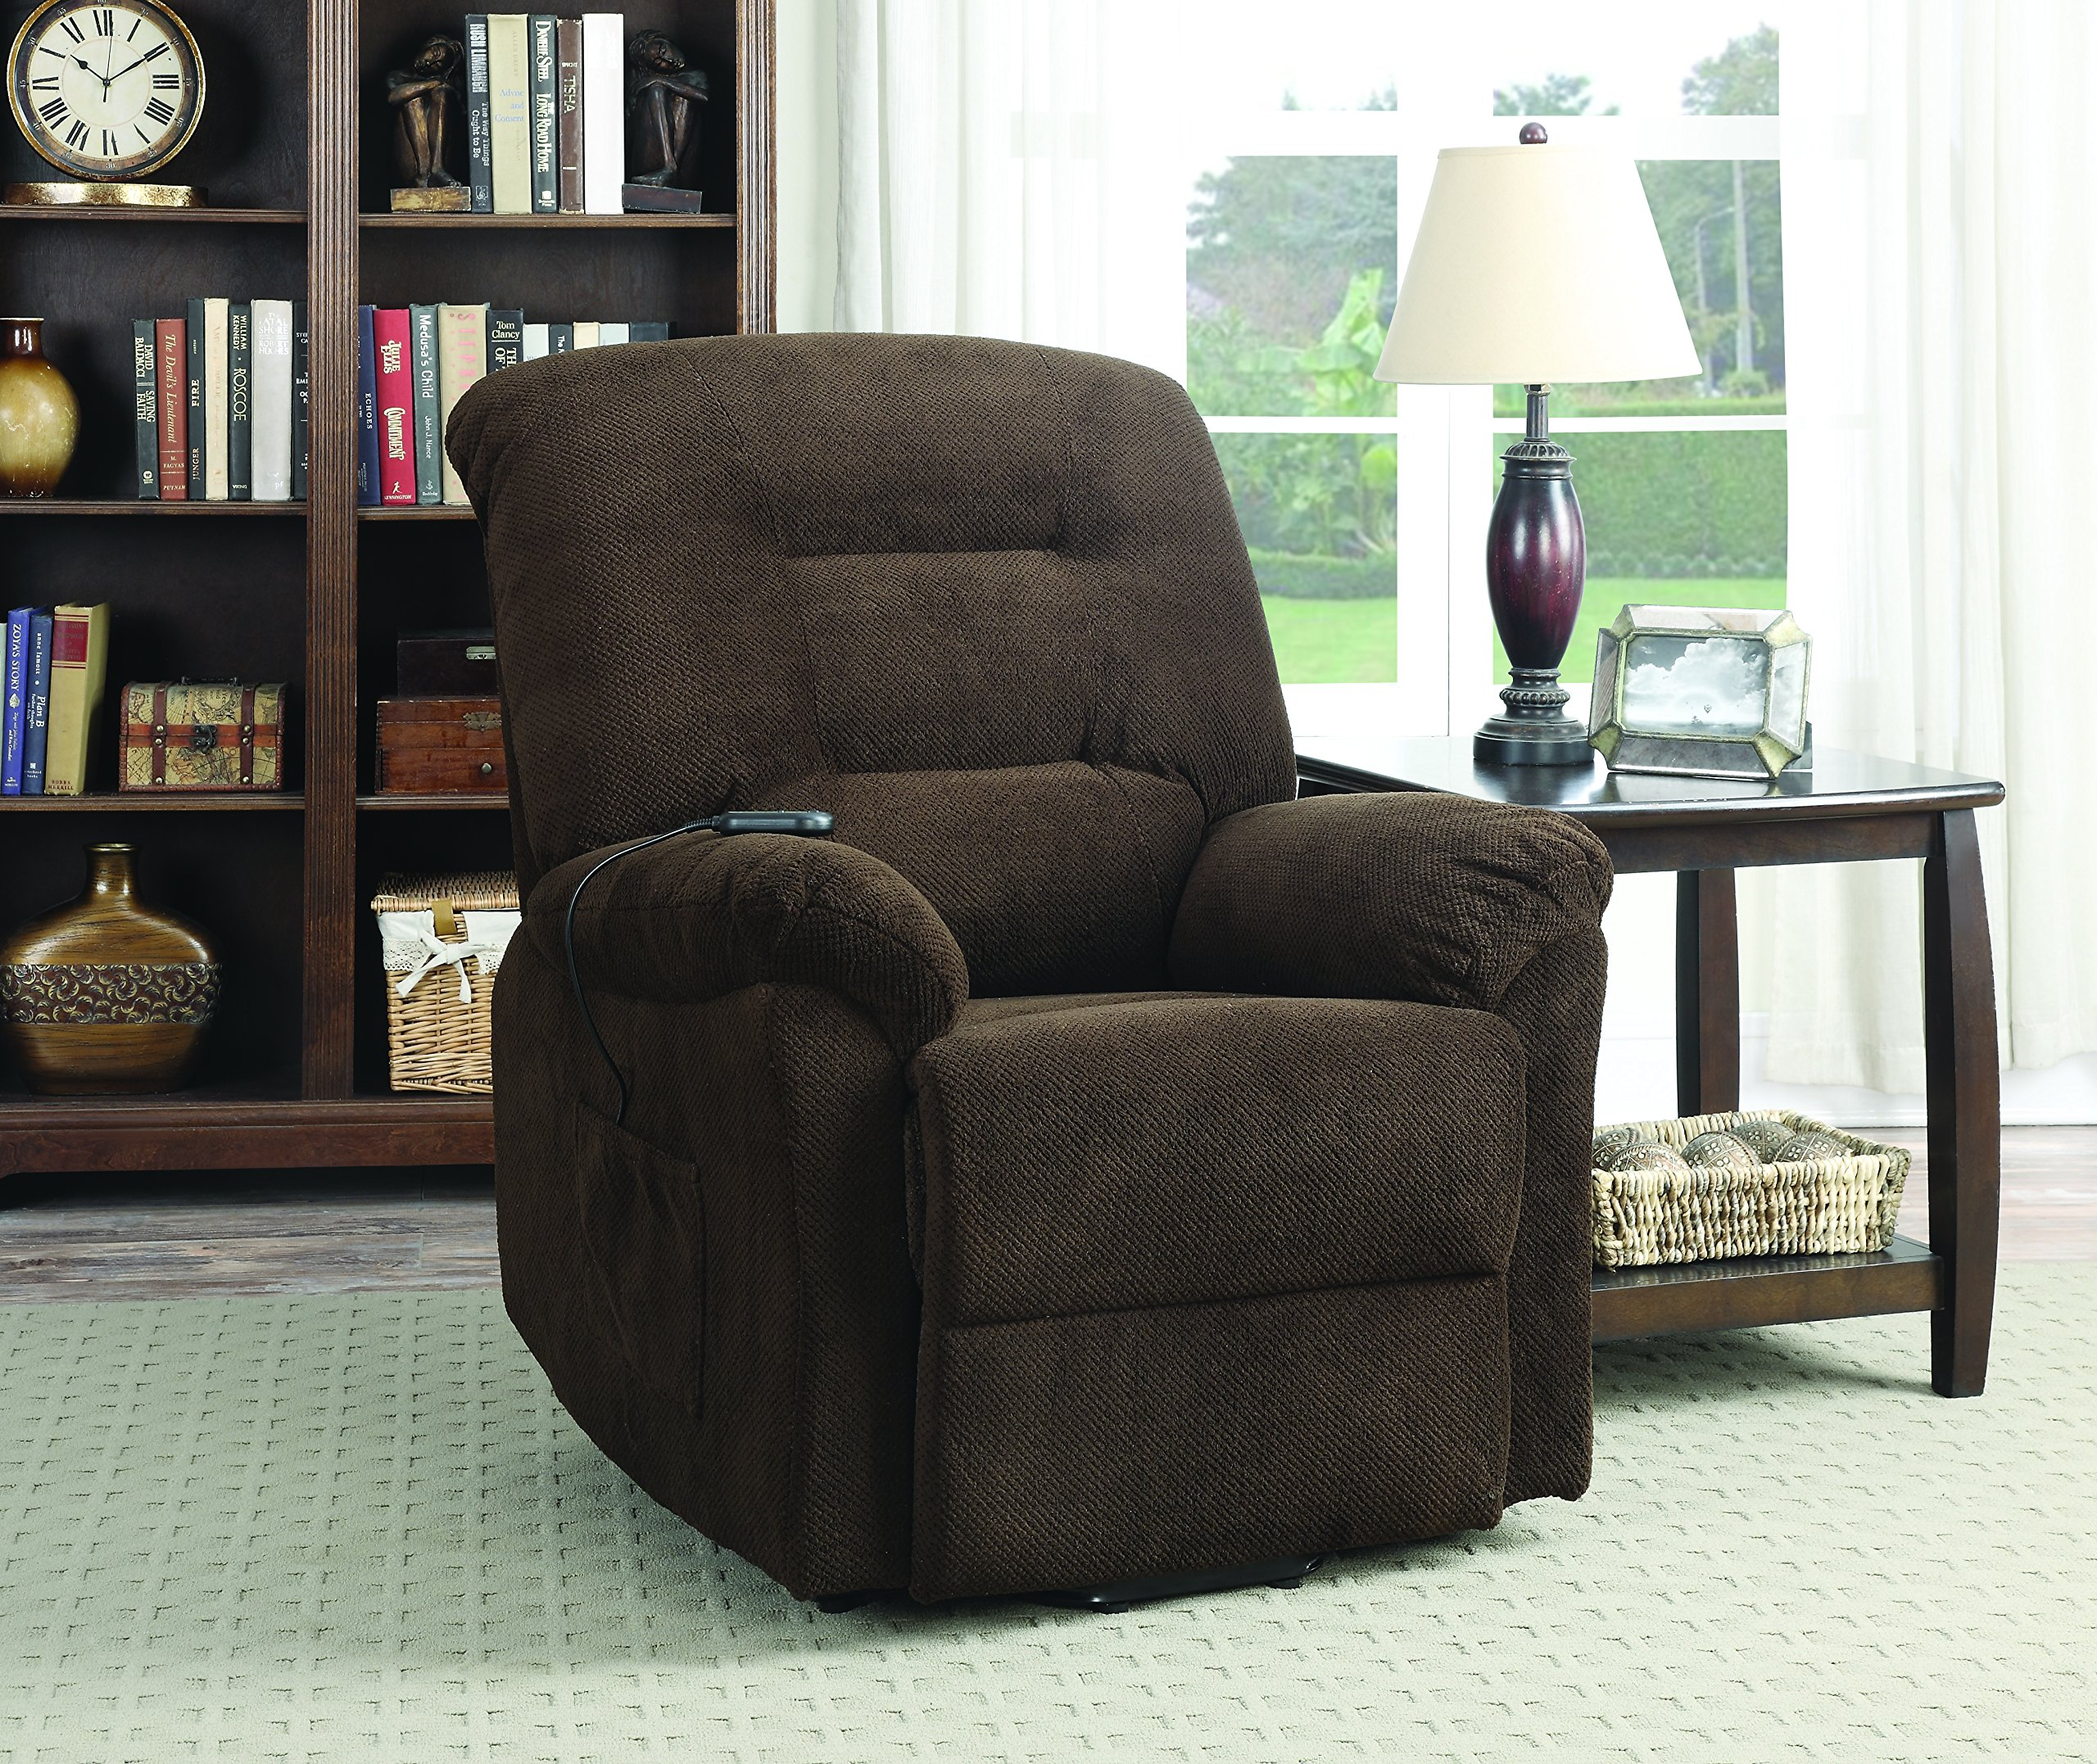 Coaster Casual Chenille Fabric Upholstered Power Lift Recliner, Chocolate